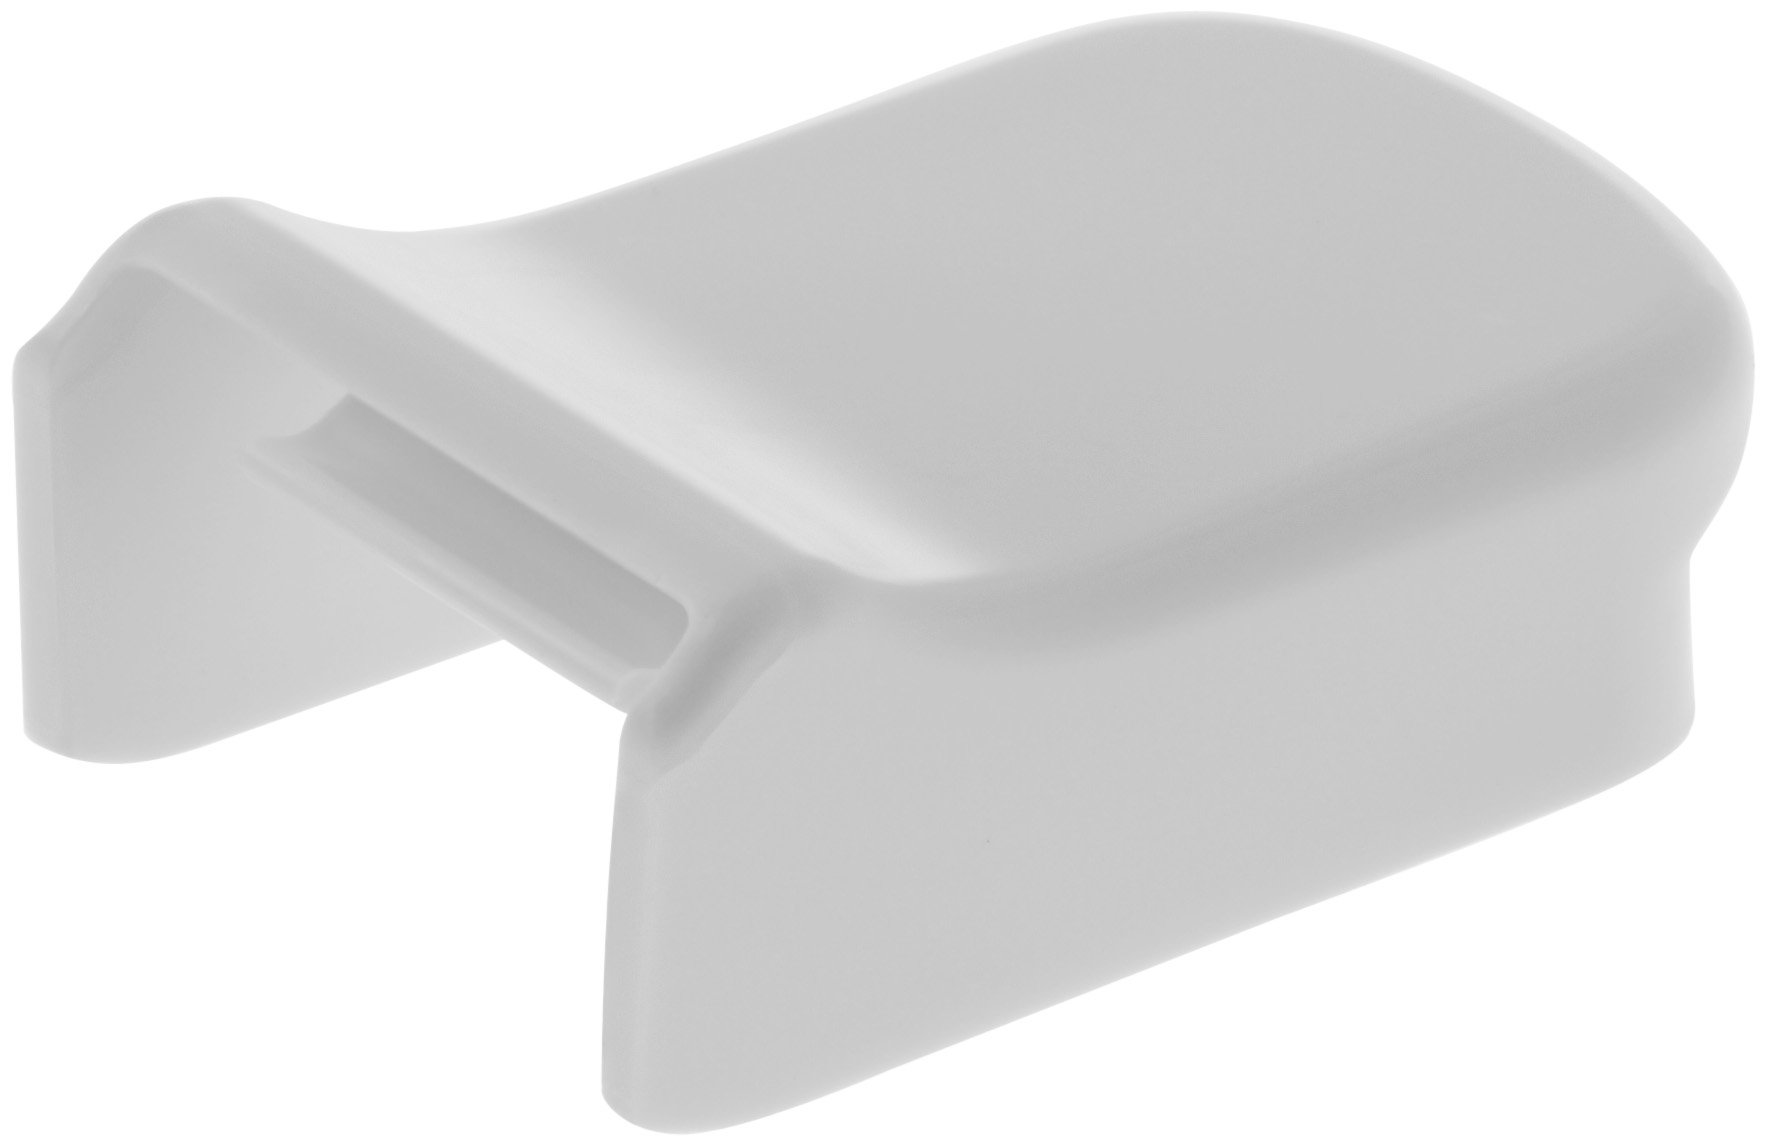 Kohler 1100507-0 Replacement Part, 1.50 x 1.50 x 2.00 inches White